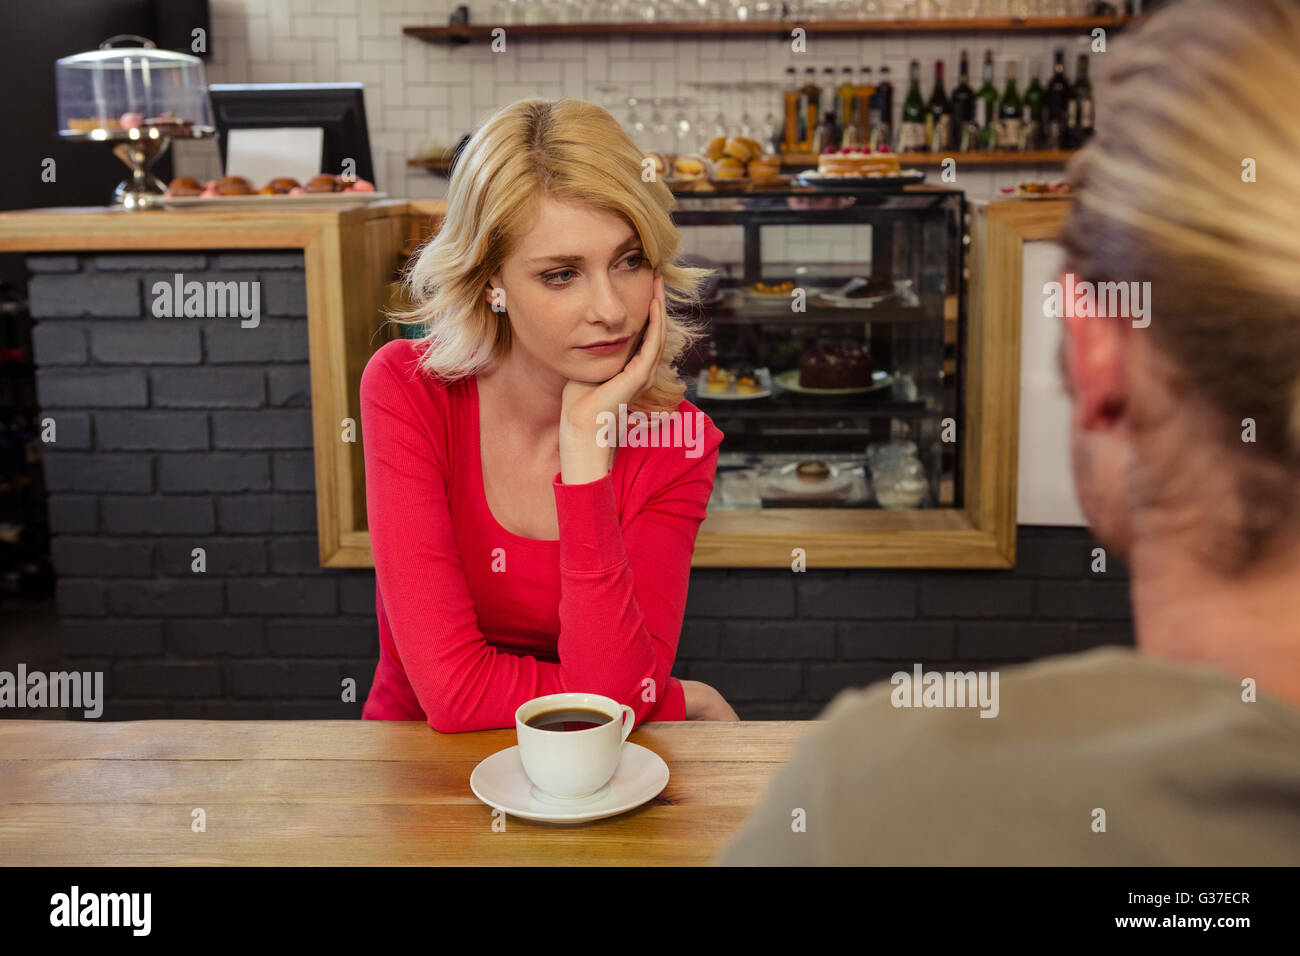 Couple having relationship difficulties - Stock Image